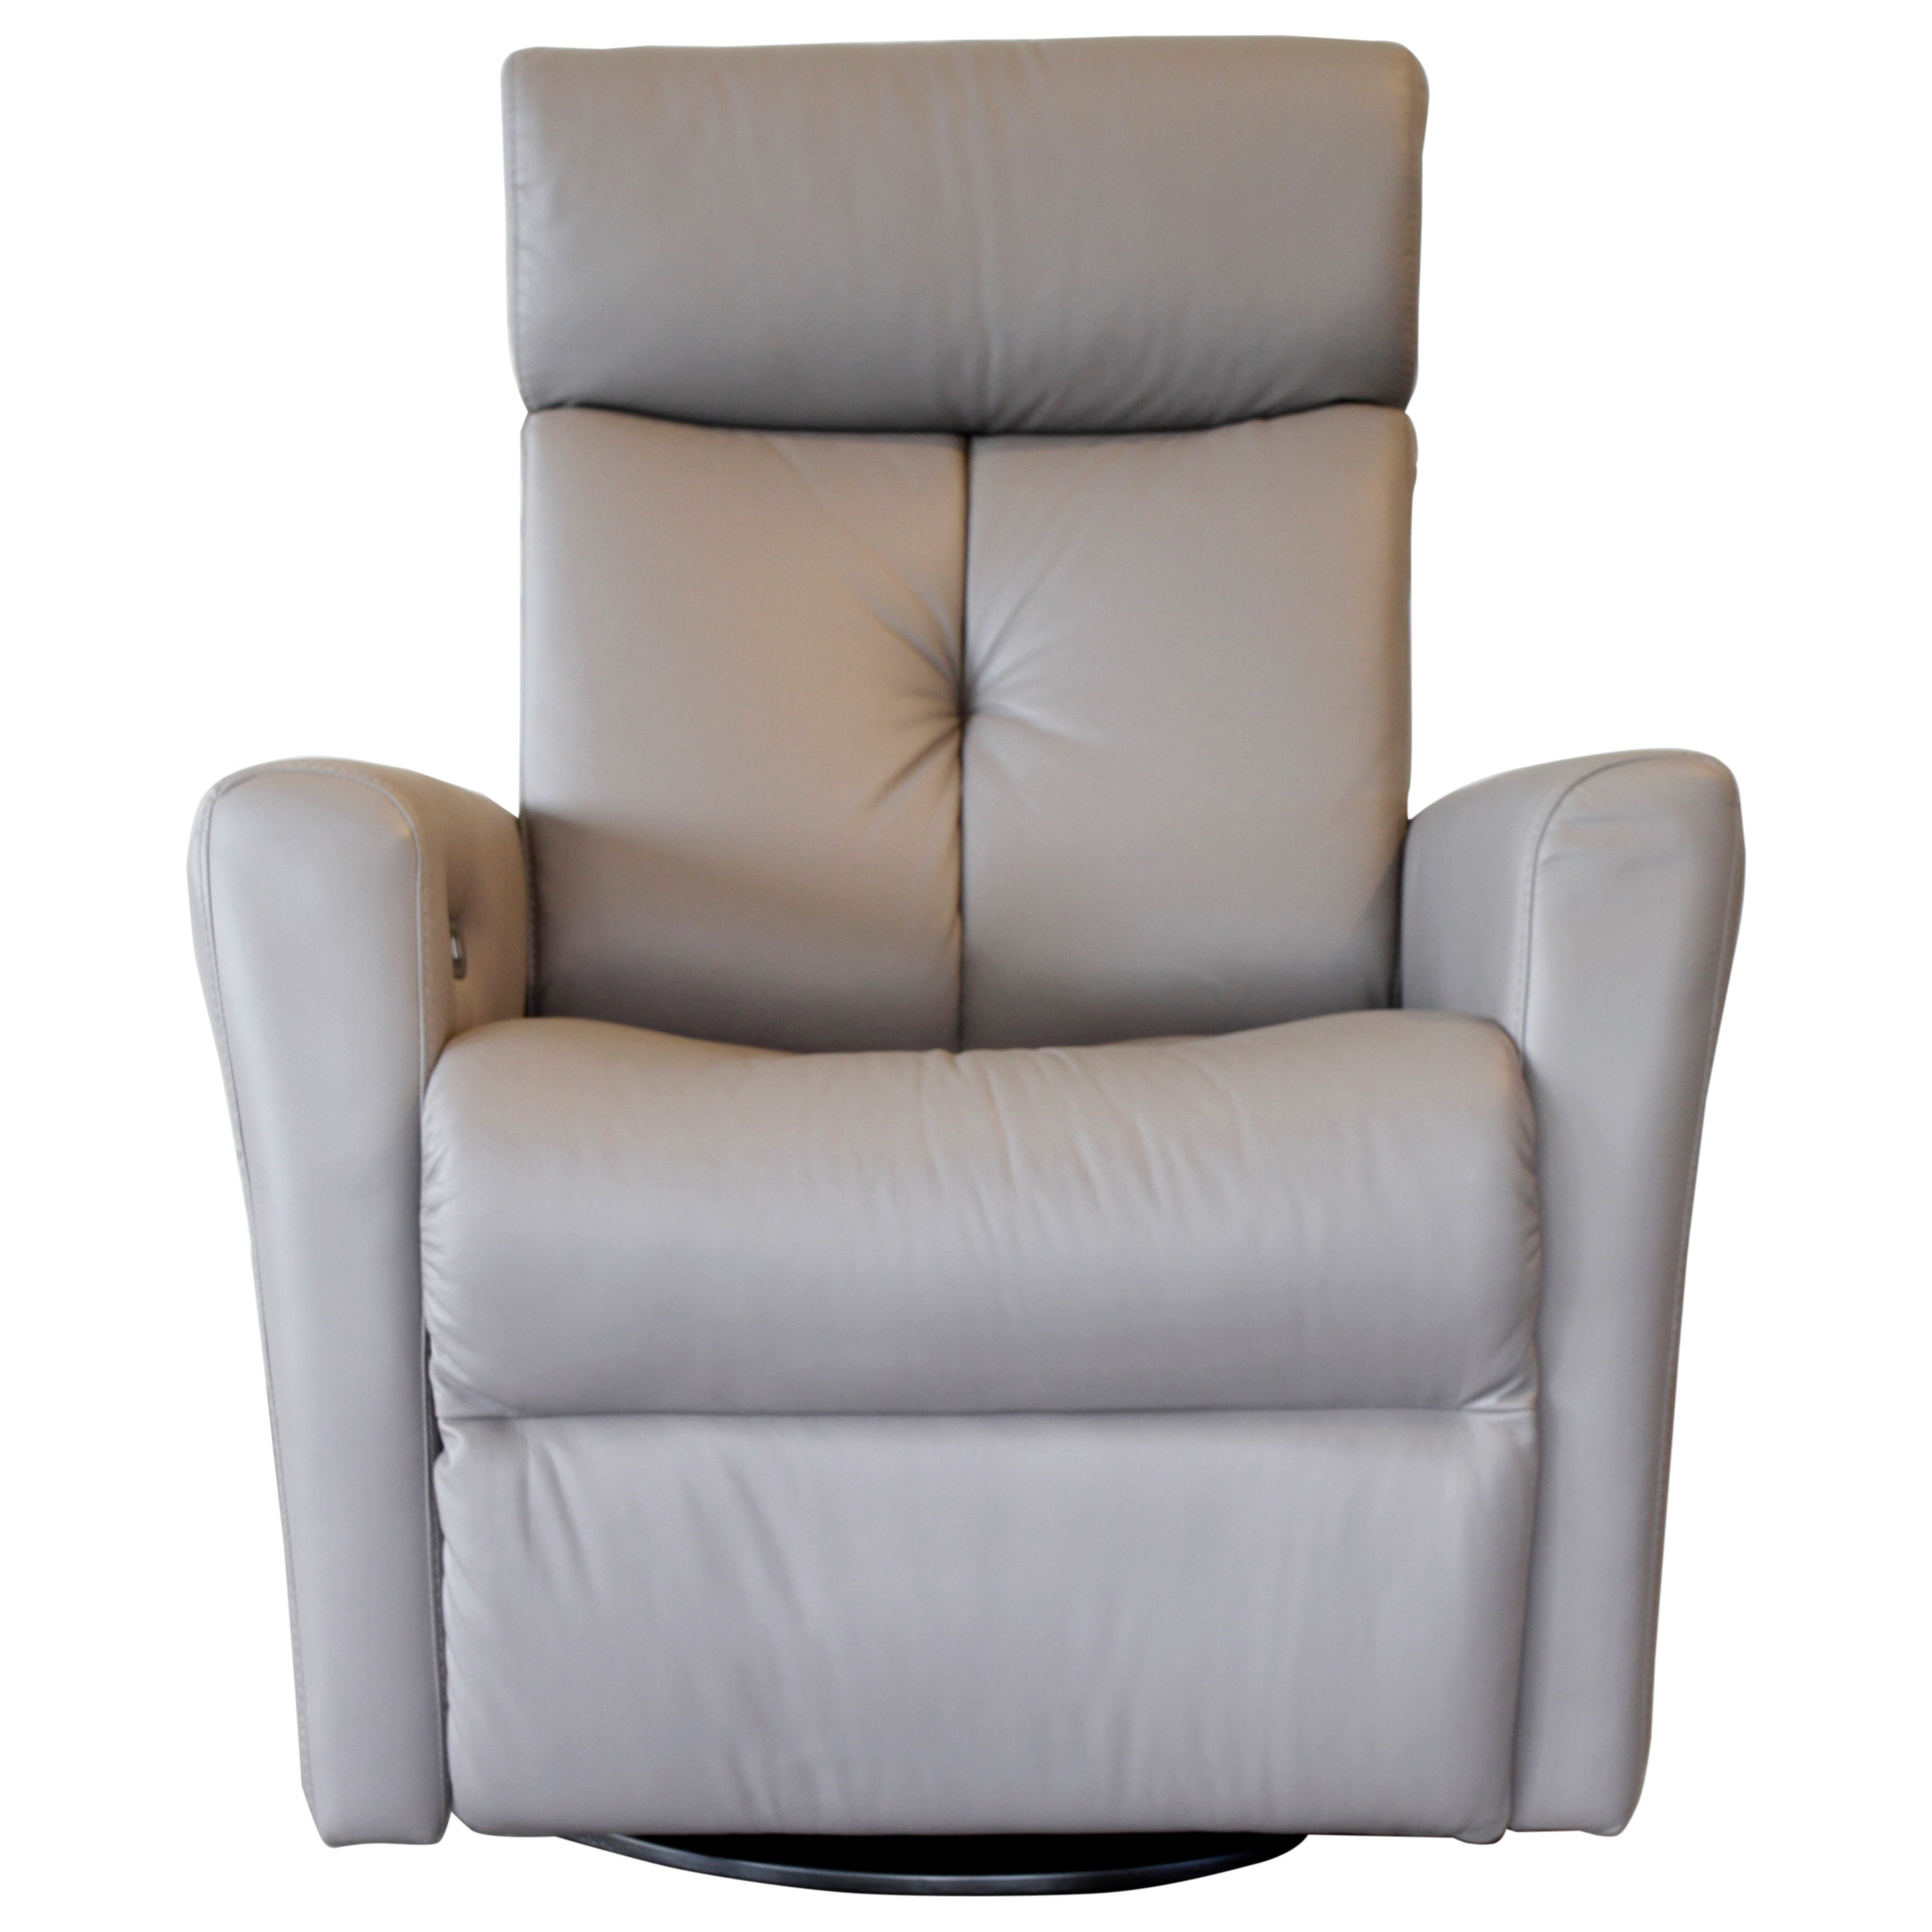 Prodigy Swivel Glider Recliner by Palliser at Prime Brothers Furniture